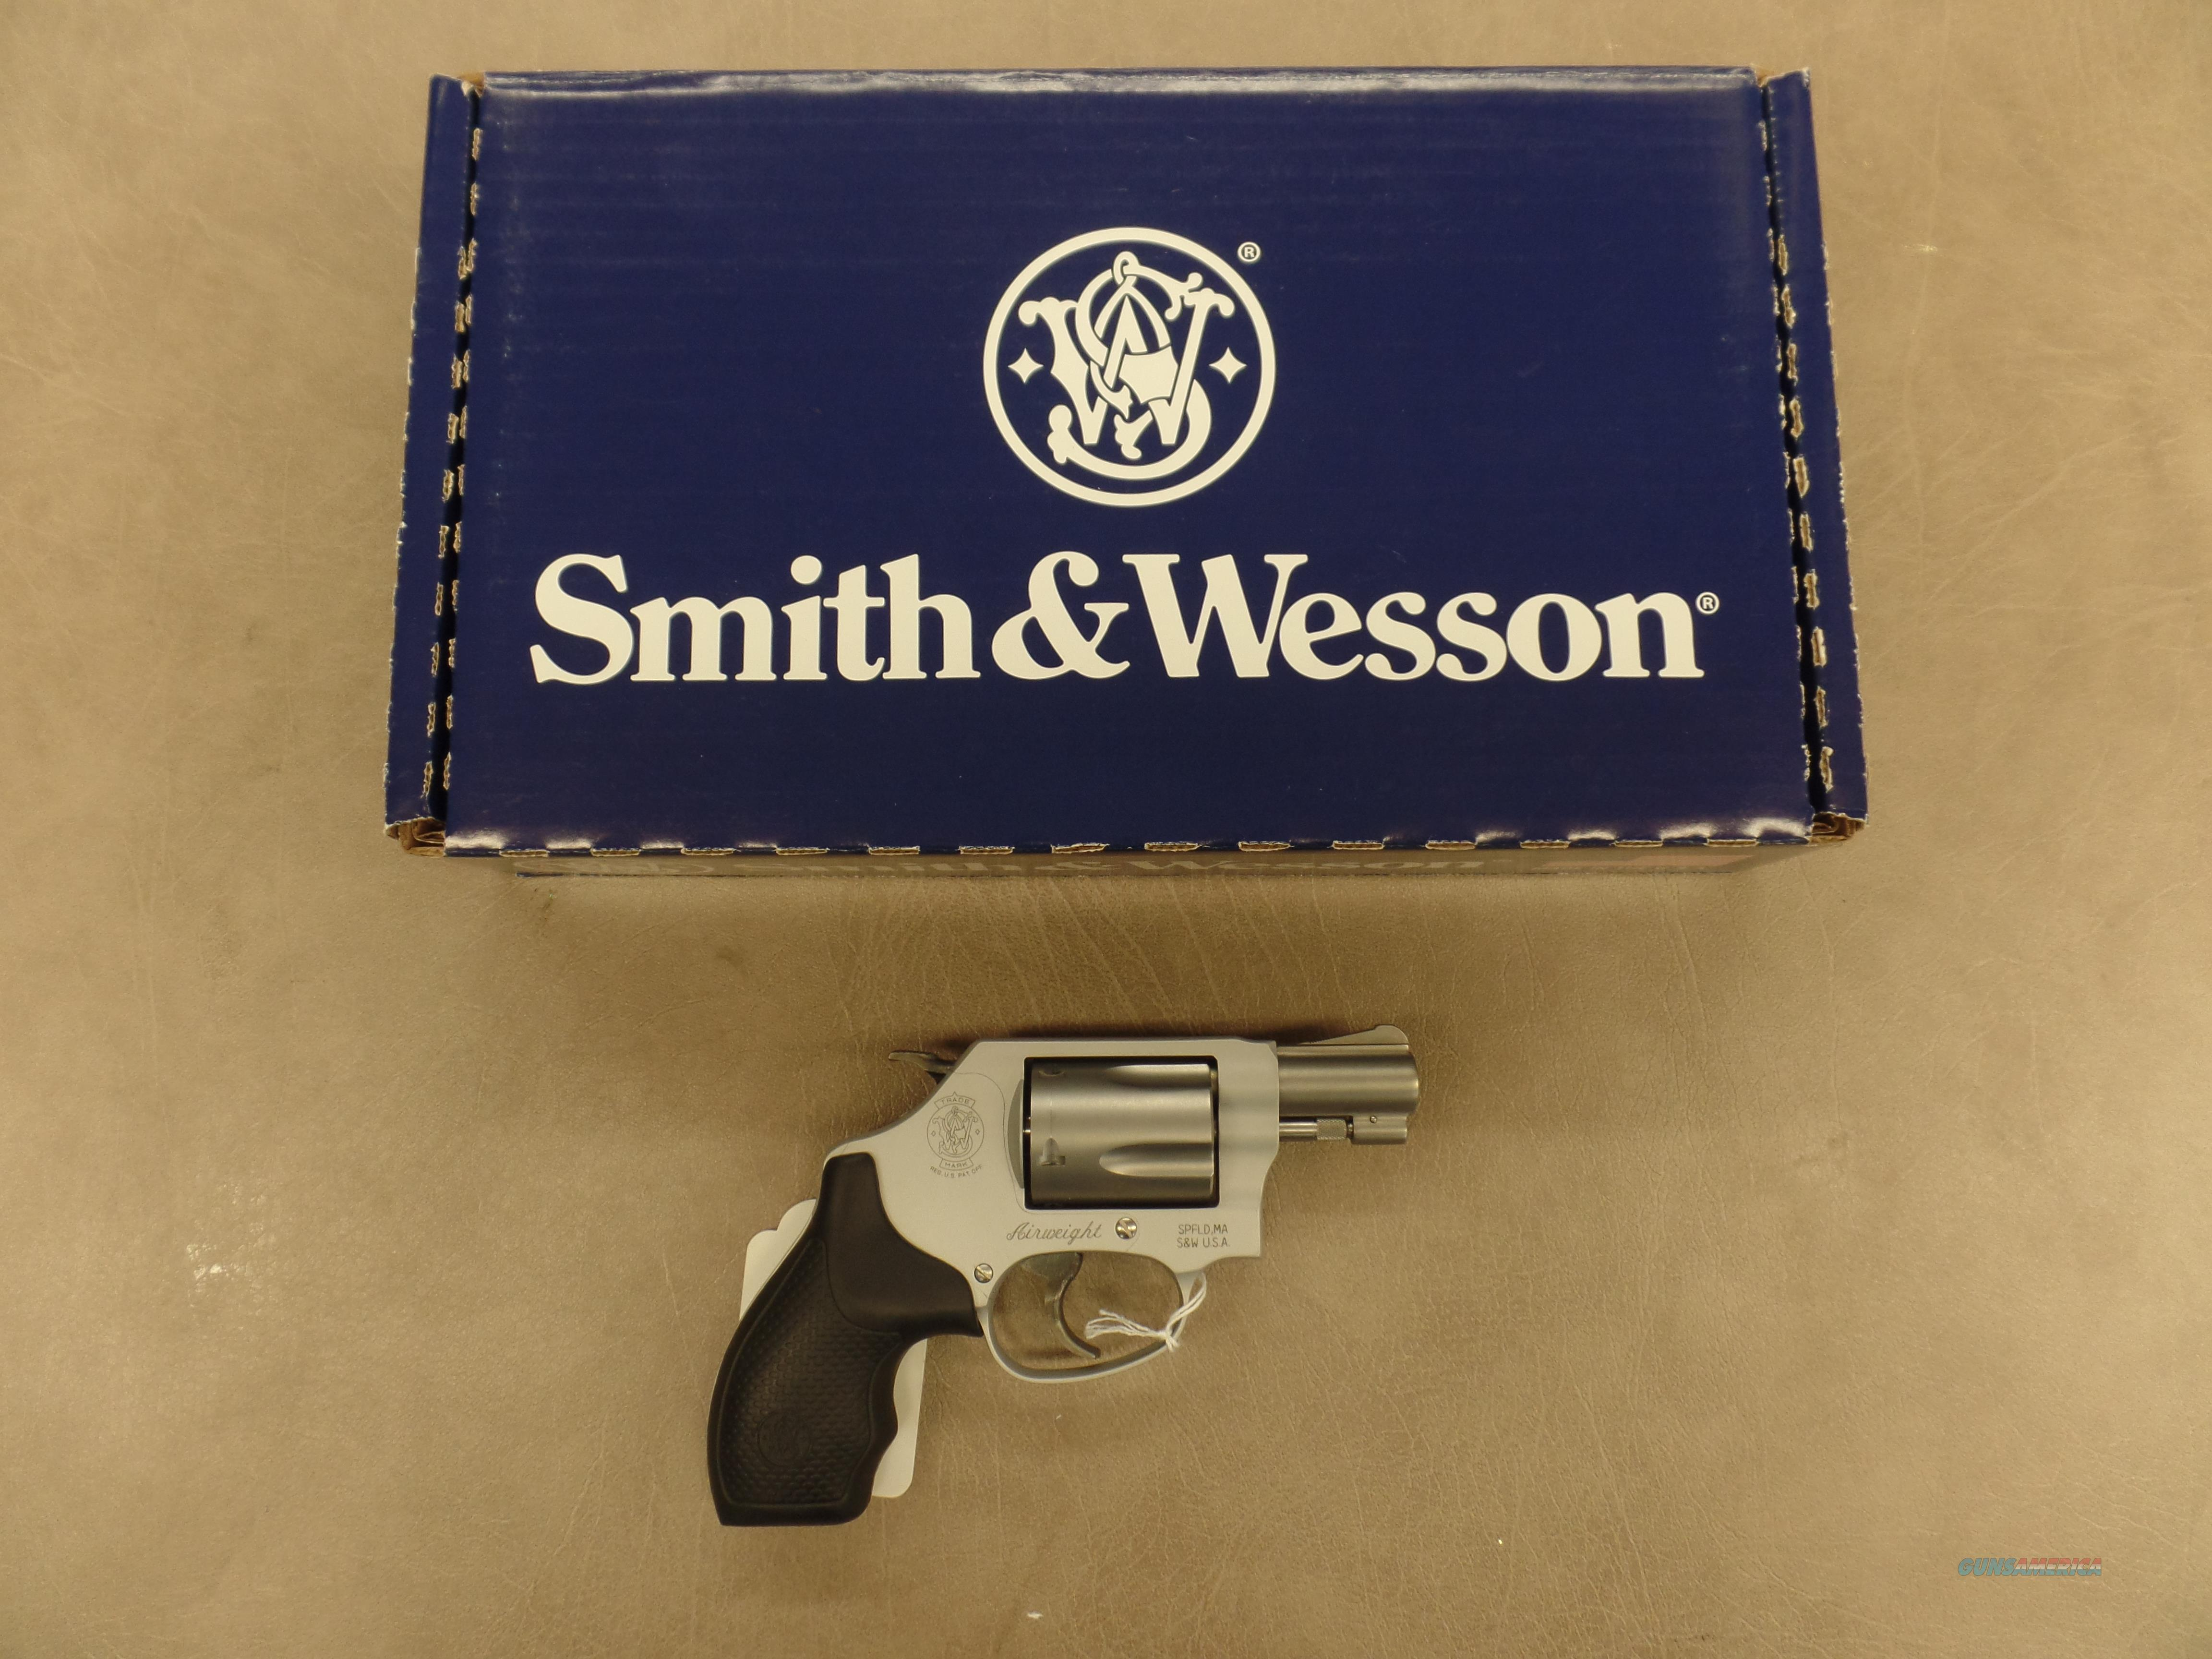 Smith & Wesson Airweight Model 637  Guns > Pistols > Smith & Wesson Revolvers > Pocket Pistols